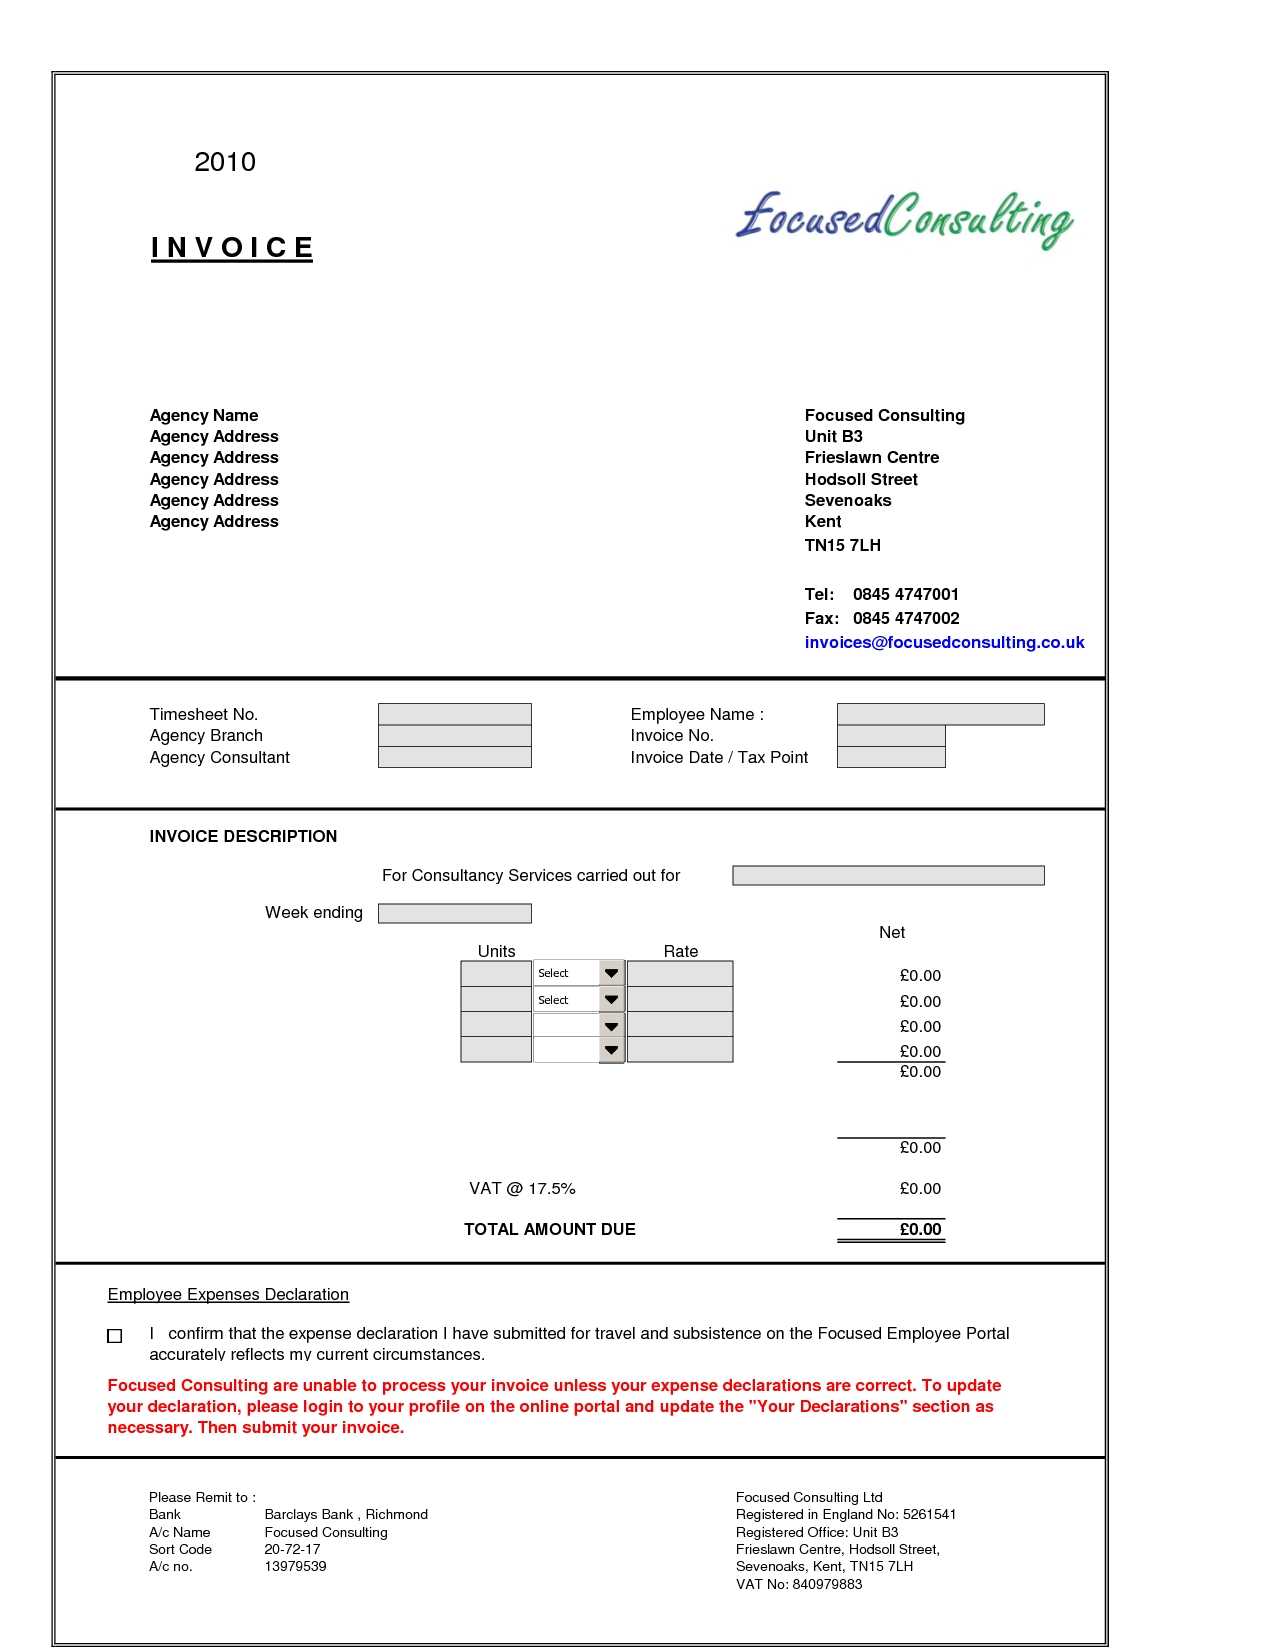 doc receipt for services rendered service receipt doc6901015 example of invoice for services rendered receipt for services rendered